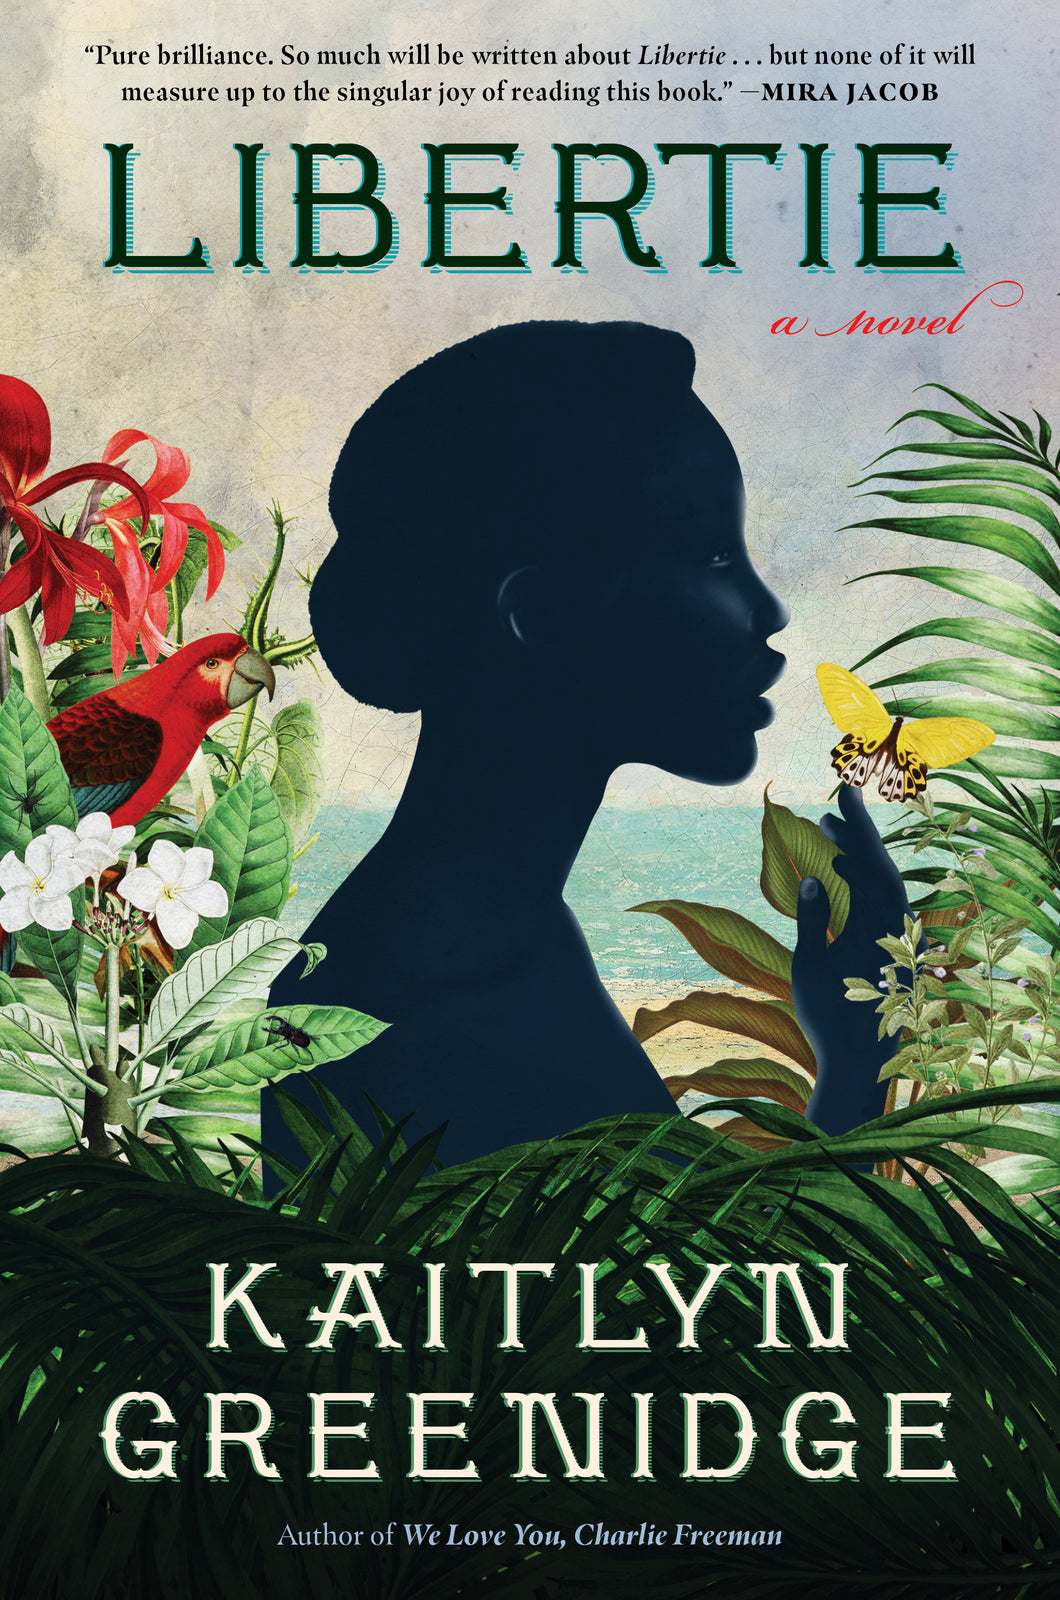 Libertie: A Novel by Kaitlyn Greenidge (Pre-Order, March 30)